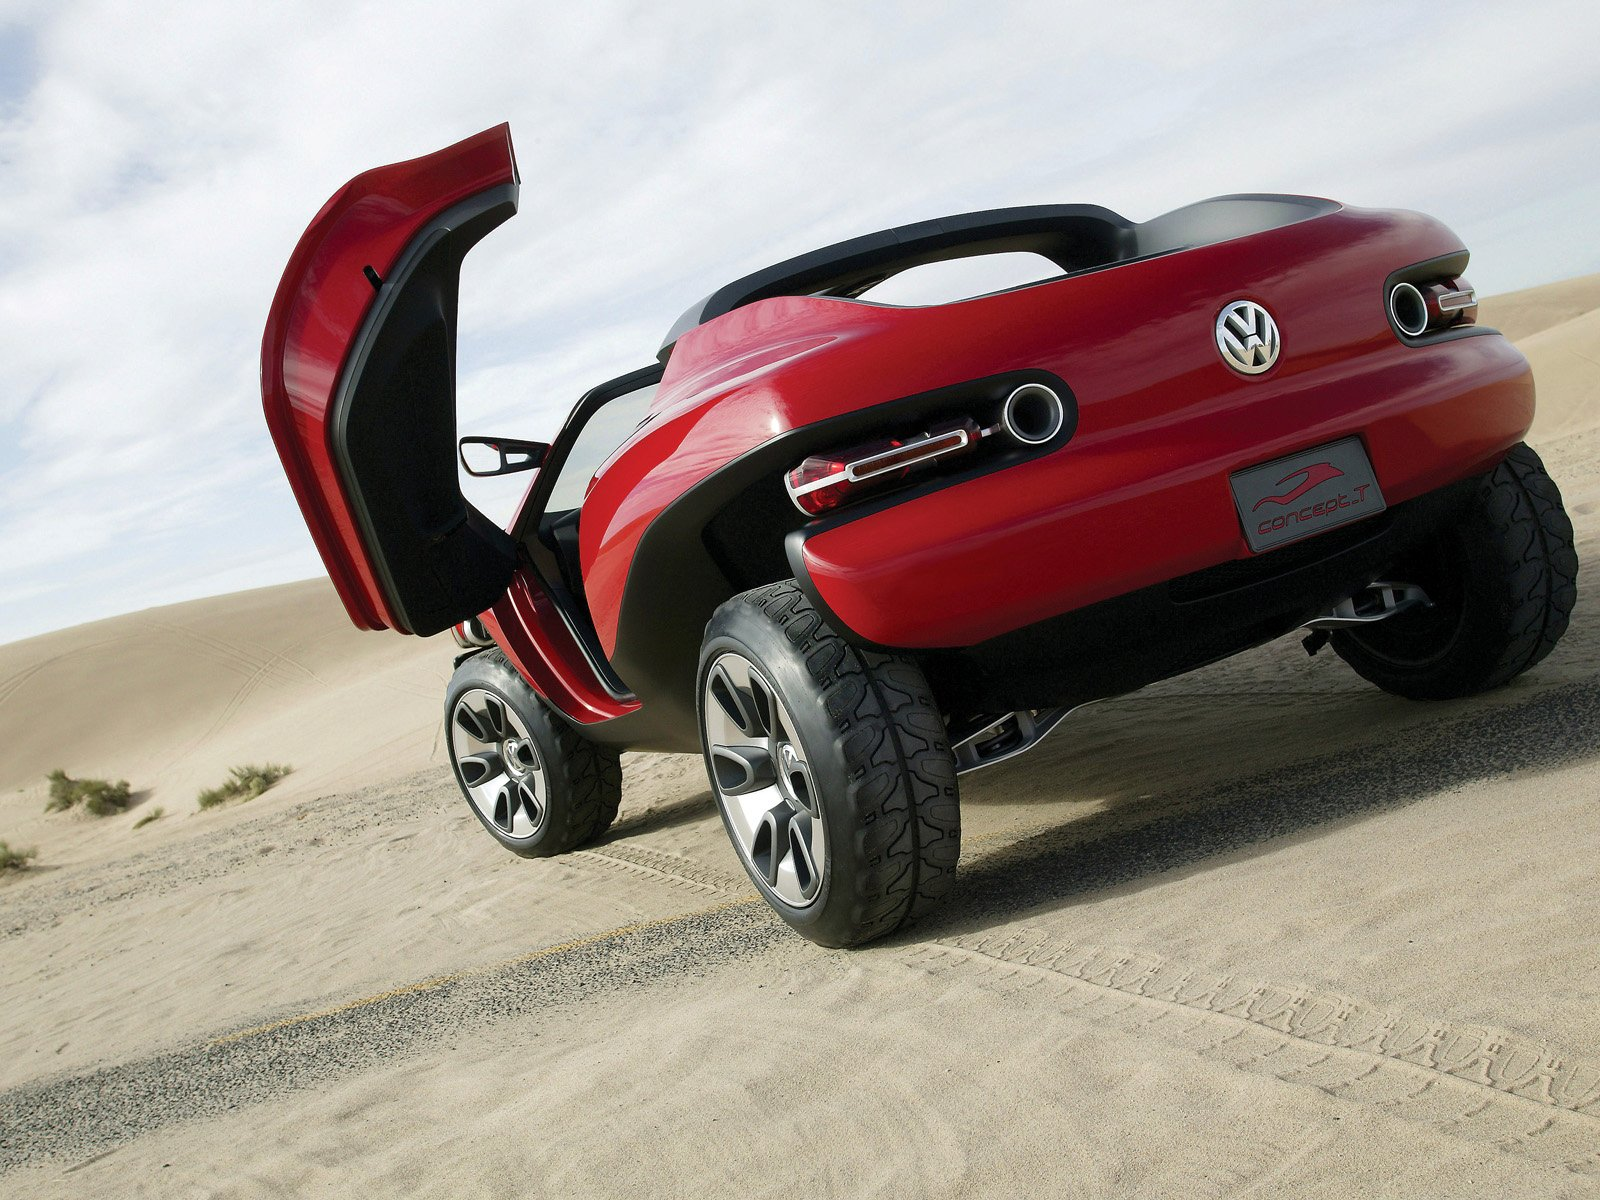 Volkswagen Concept T photos - PhotoGallery with 13 pics ...